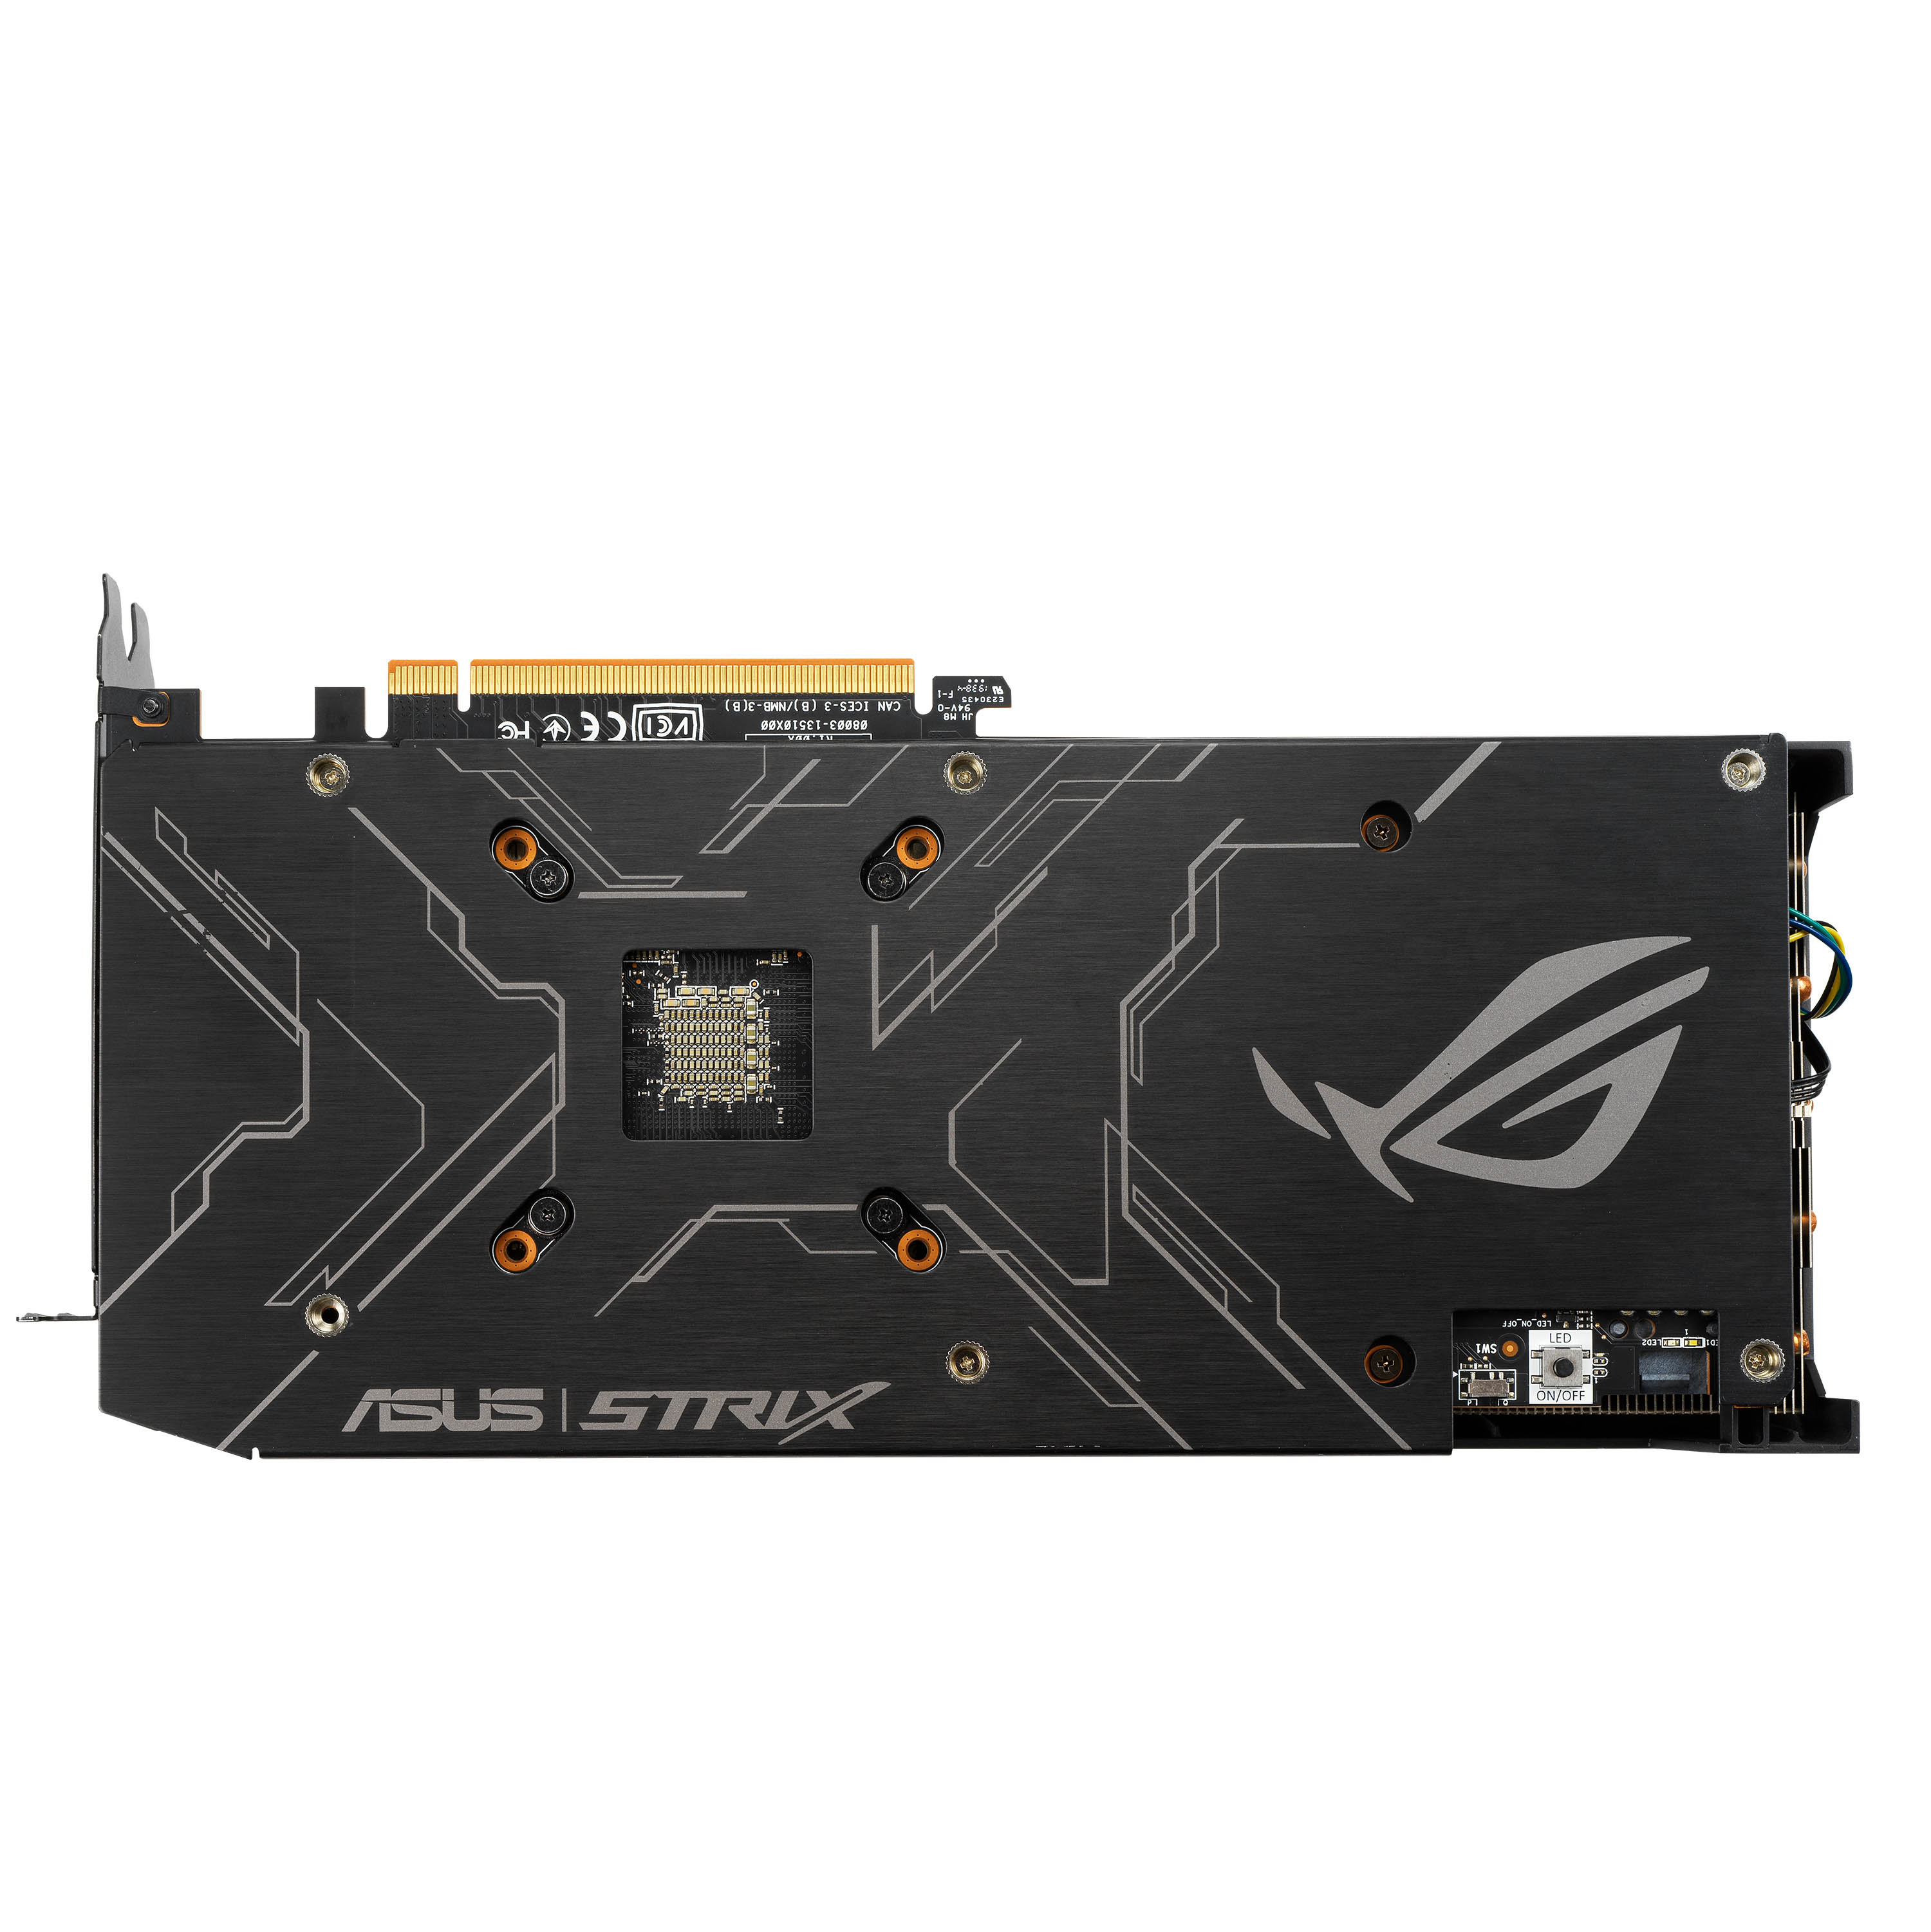 ASUS annuncia le schede video ROG Strix e Dual Radeon RX 5500 XT 1